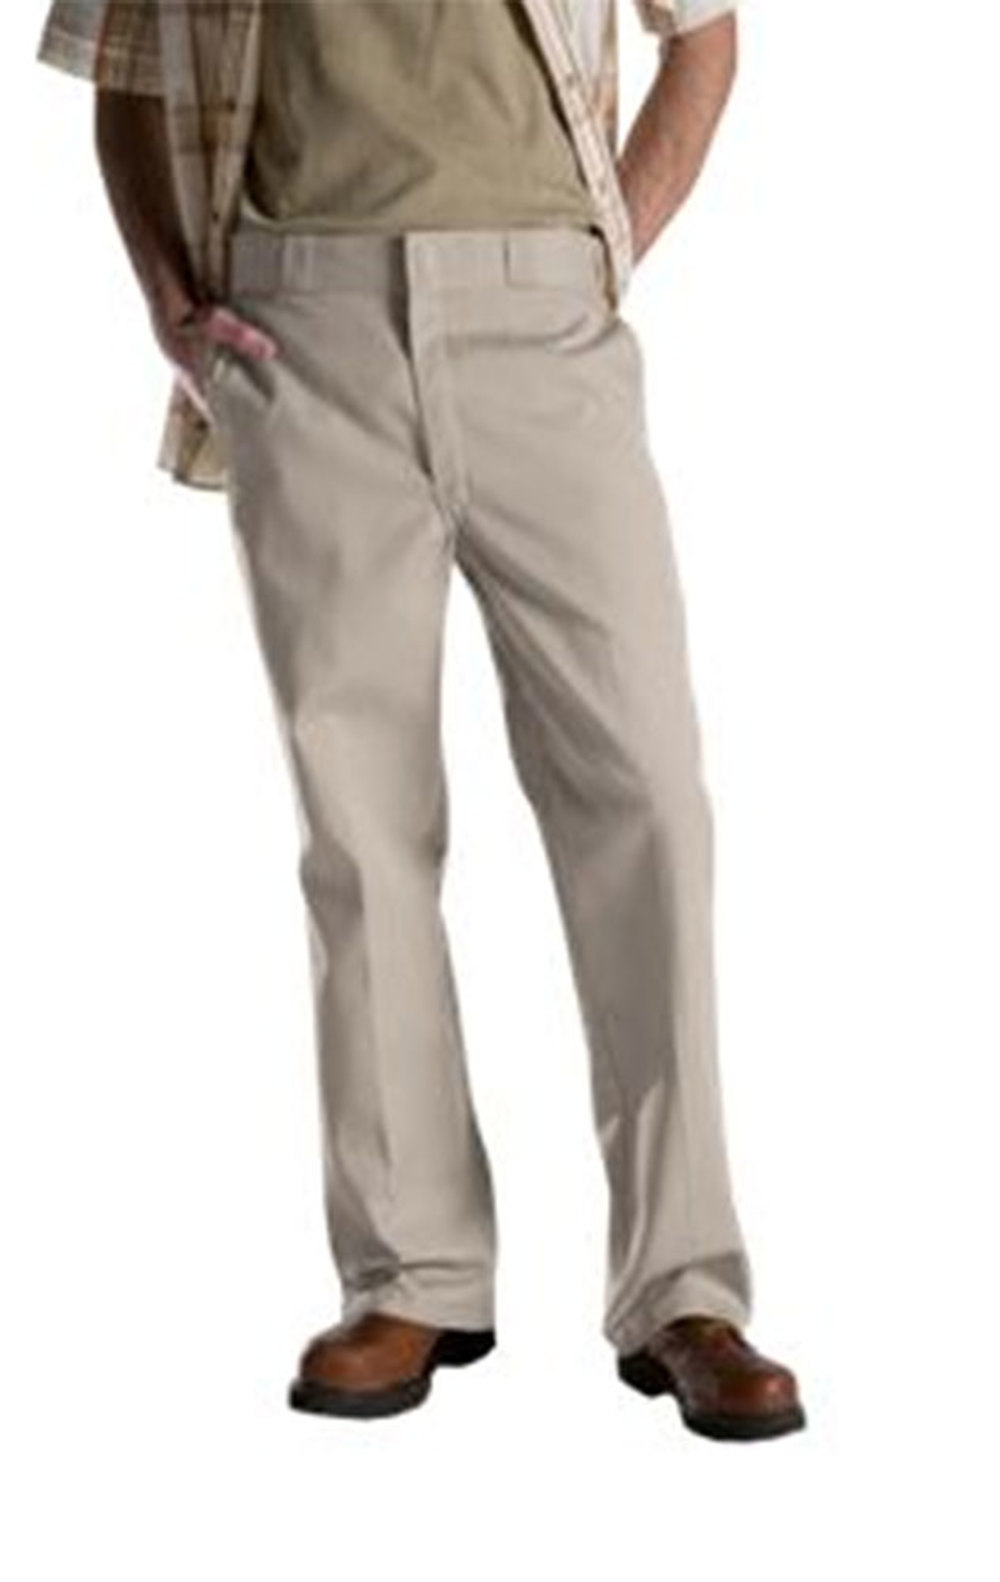 Dickies Men's 874 Traditional Utility Work Pants - Walmart.com